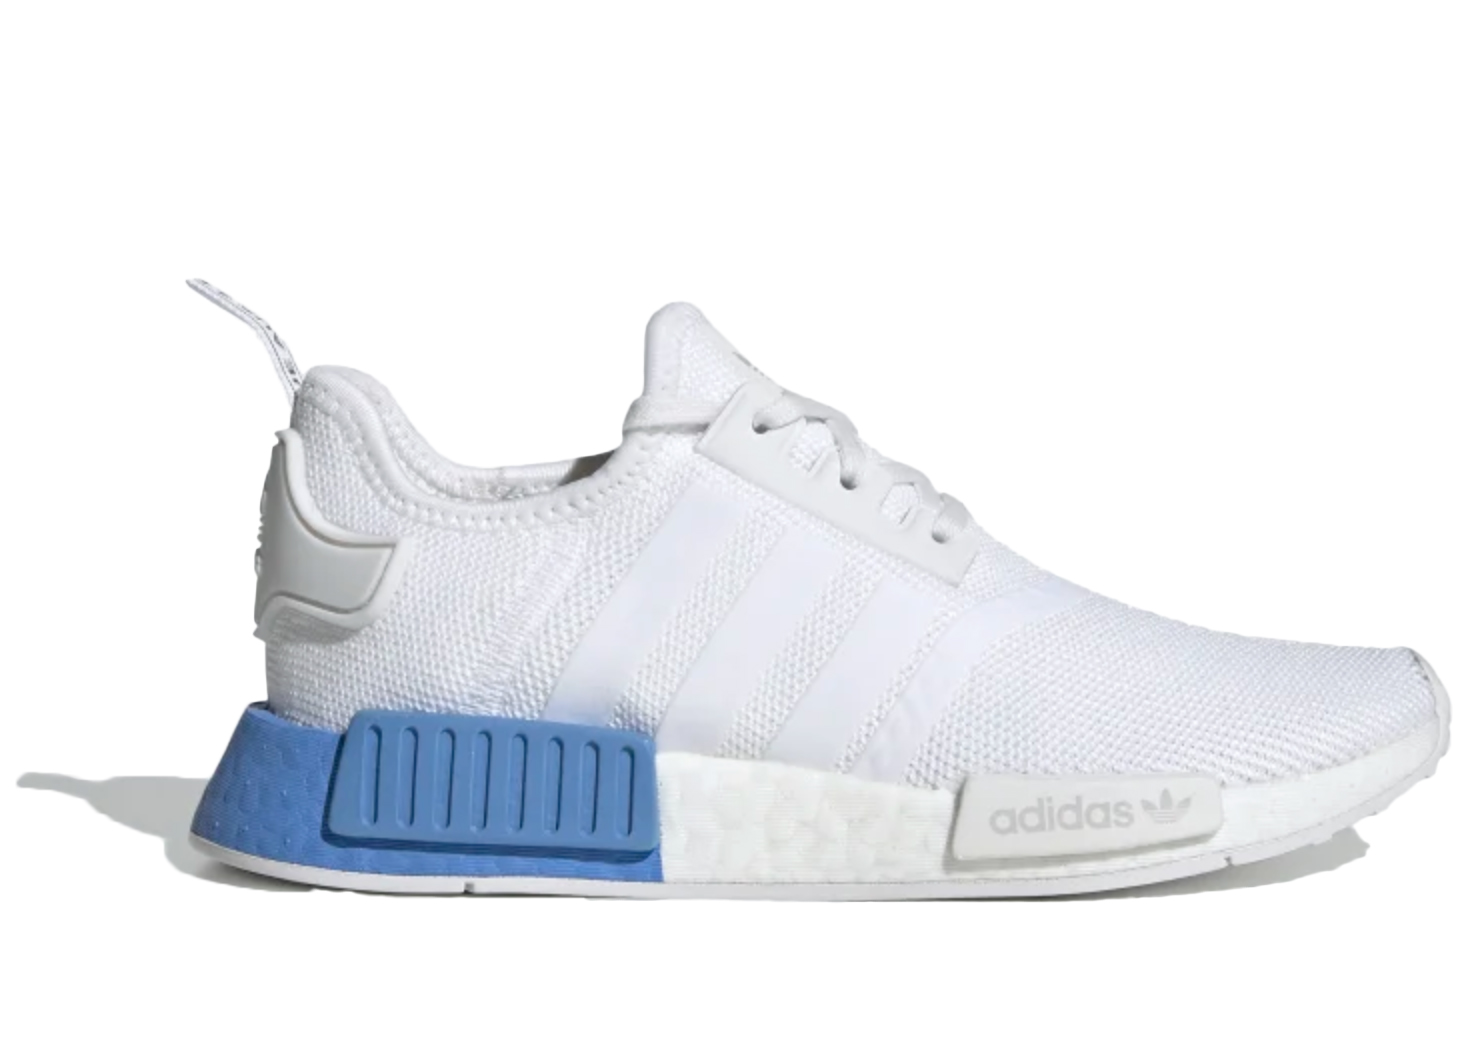 adidas NMD R1 Cloud White Real Blue (GS